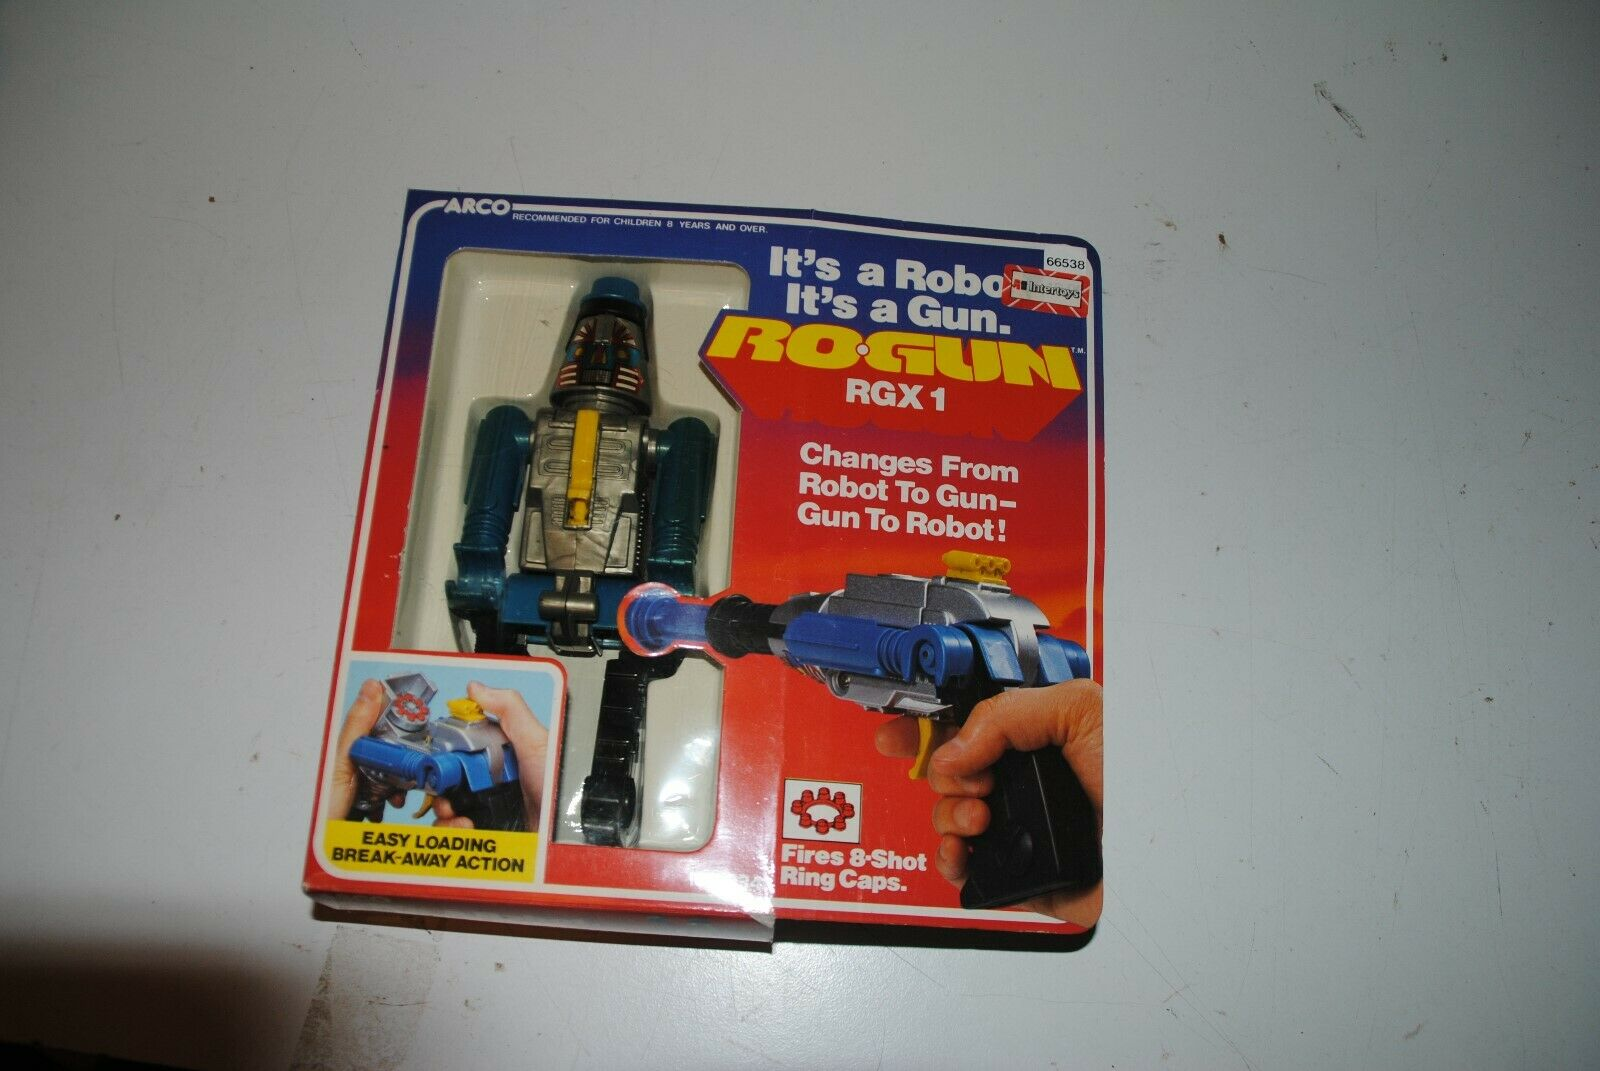 ARCO  GOBOTS 1984  RoGun RGXV1 Robot to Rifle nuovo in scatola